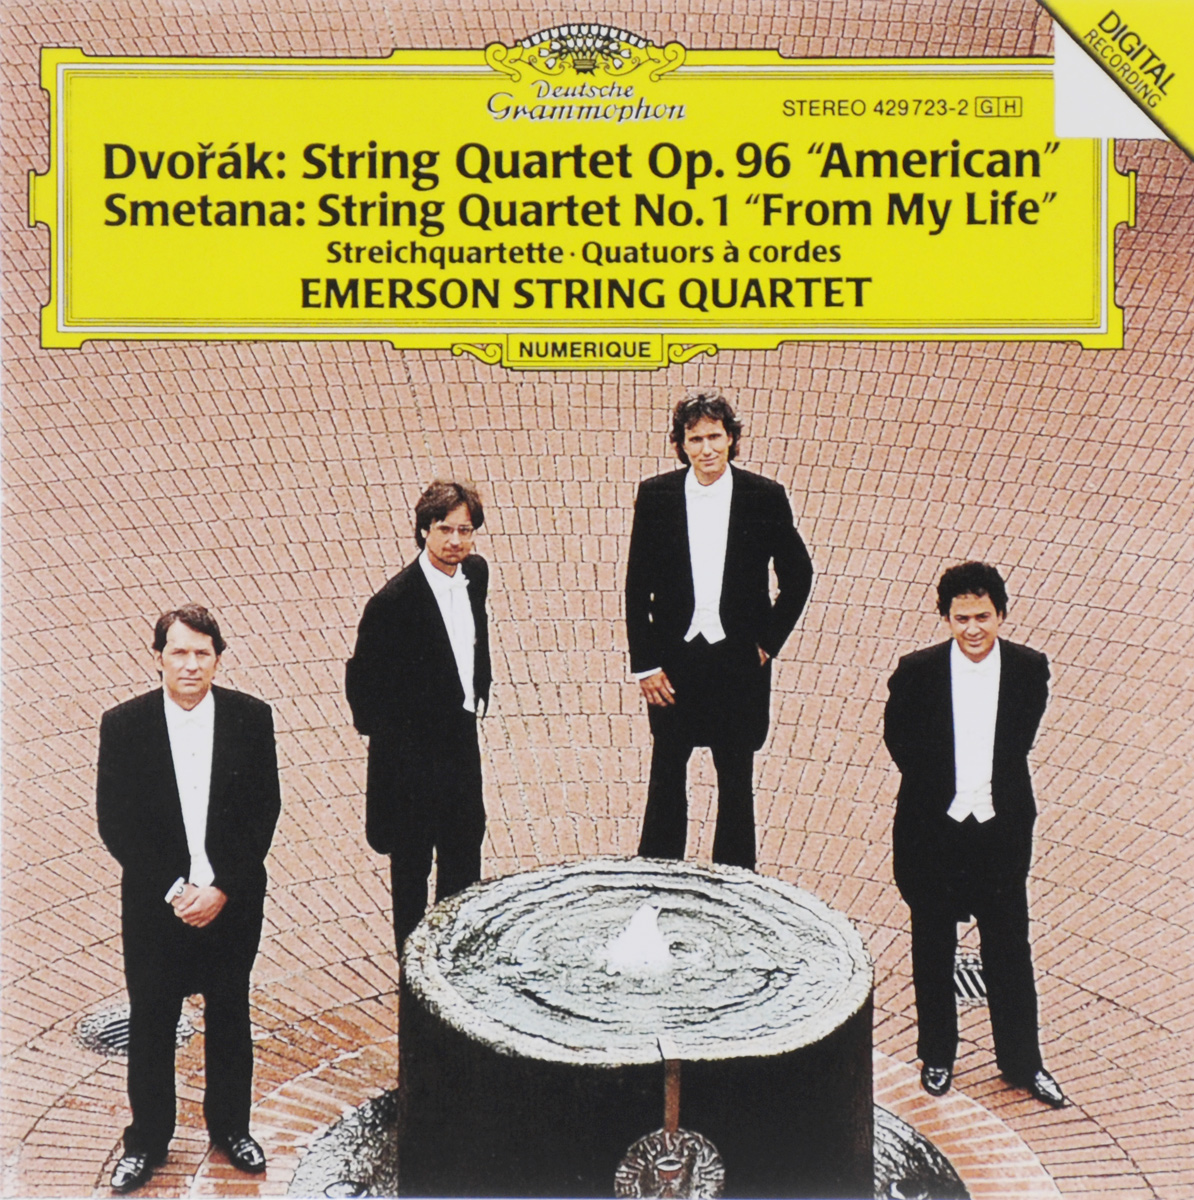 Emerson String Quartet Emerson String Quartet. String Quartet Op. 96 American / String Quartet No. 1 From My Life летние шины kormoran 235 60 r16 100h suv summer